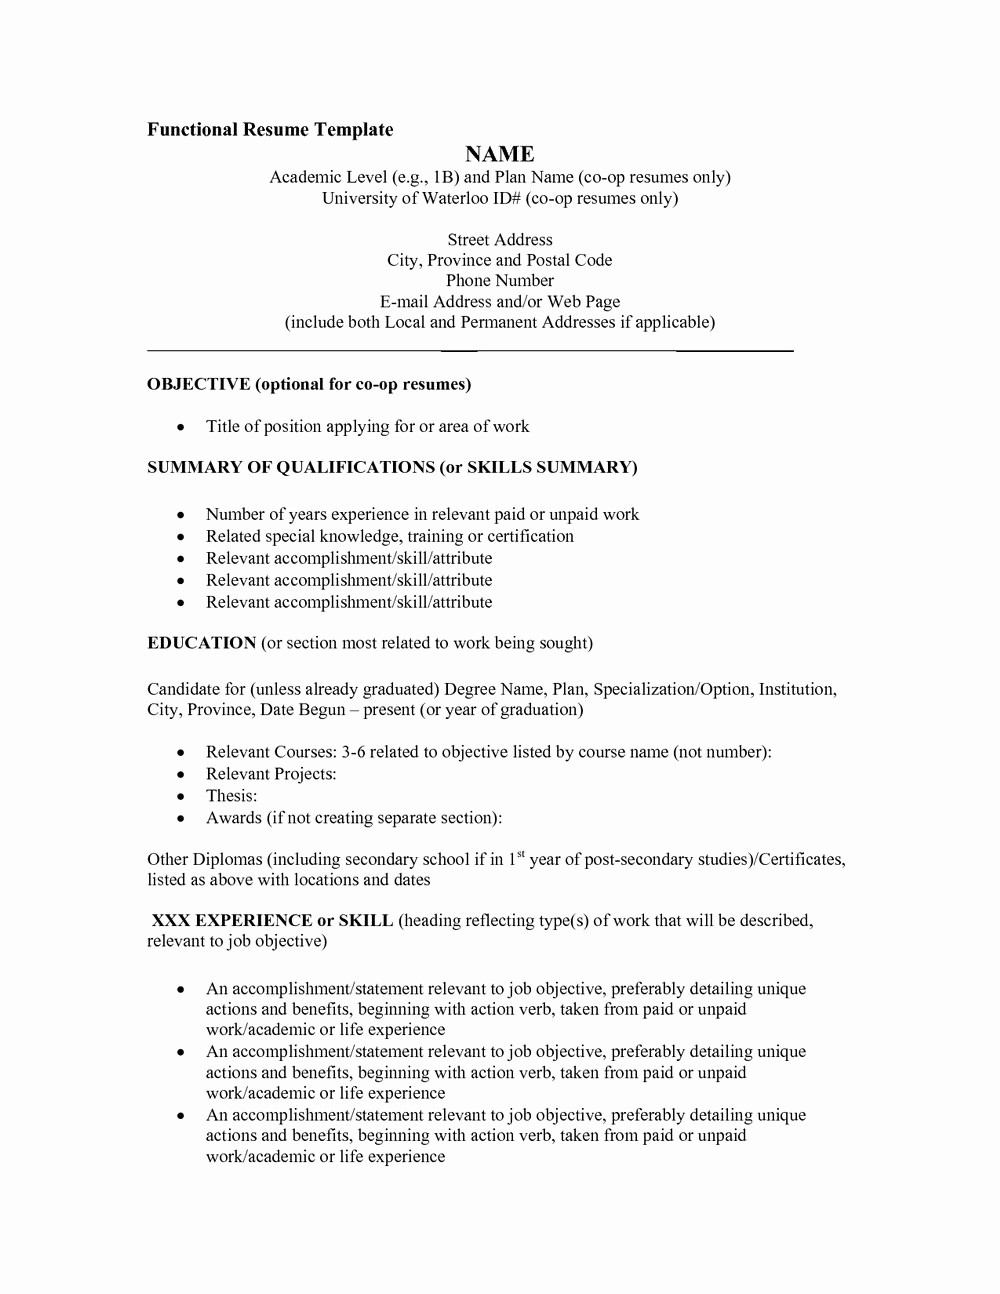 Functional Resume Templates Free Download New Functional Resume Template Free Download Resumes 297